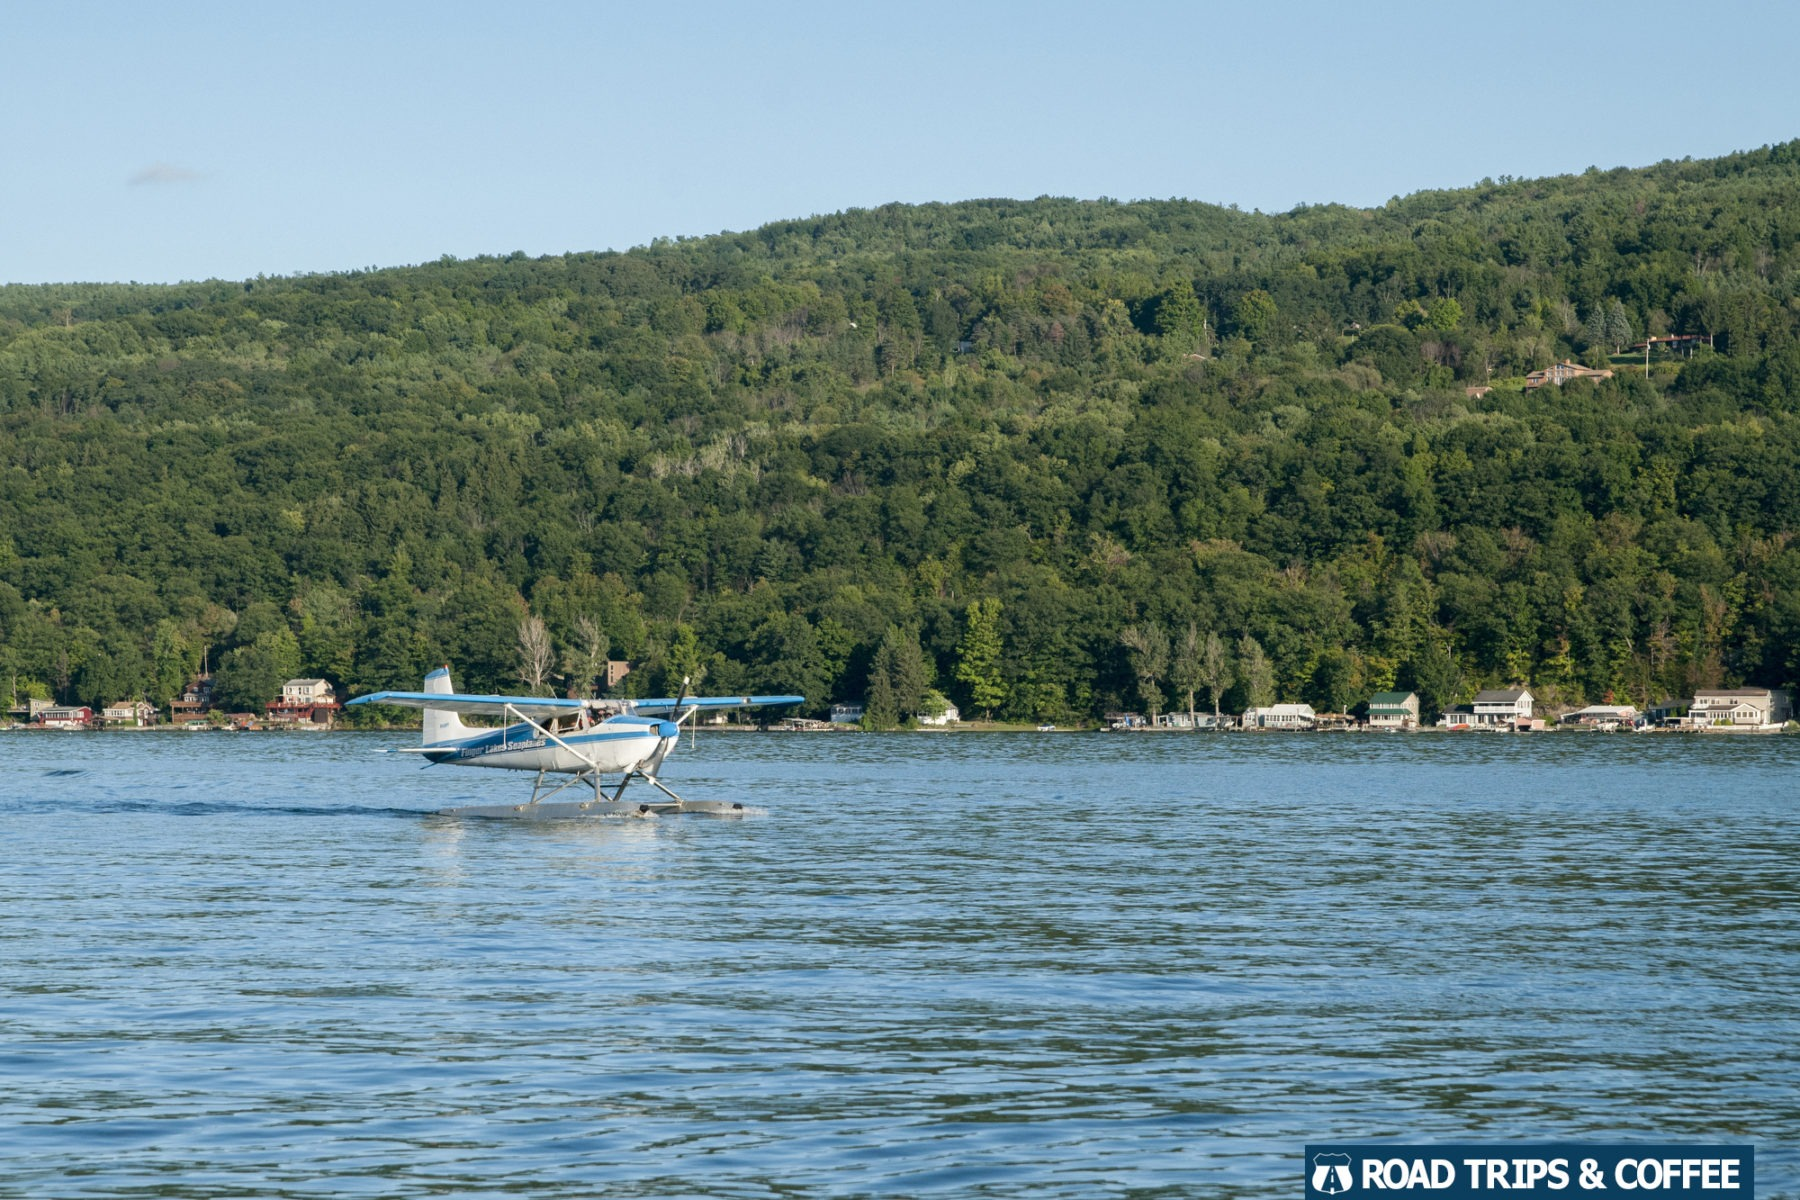 A seaplane comes in for a landing on Keuka Lake in Hammondsport, New York